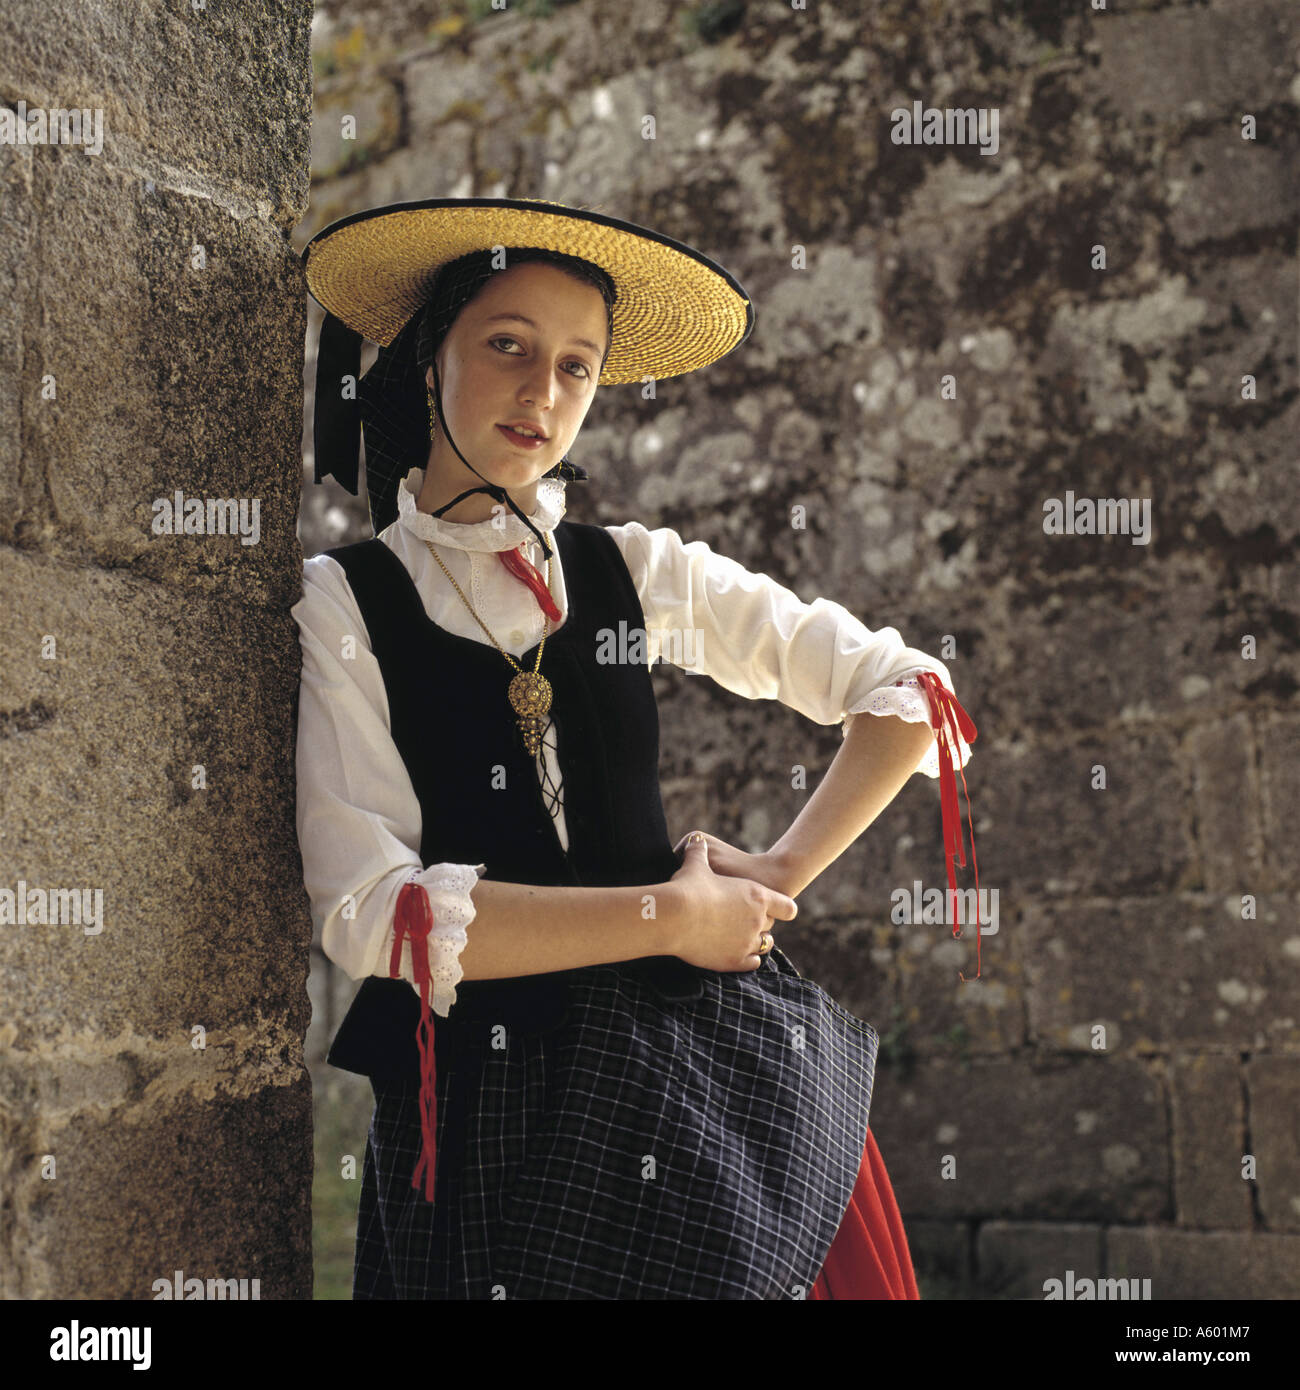 Spain Woman Clothing